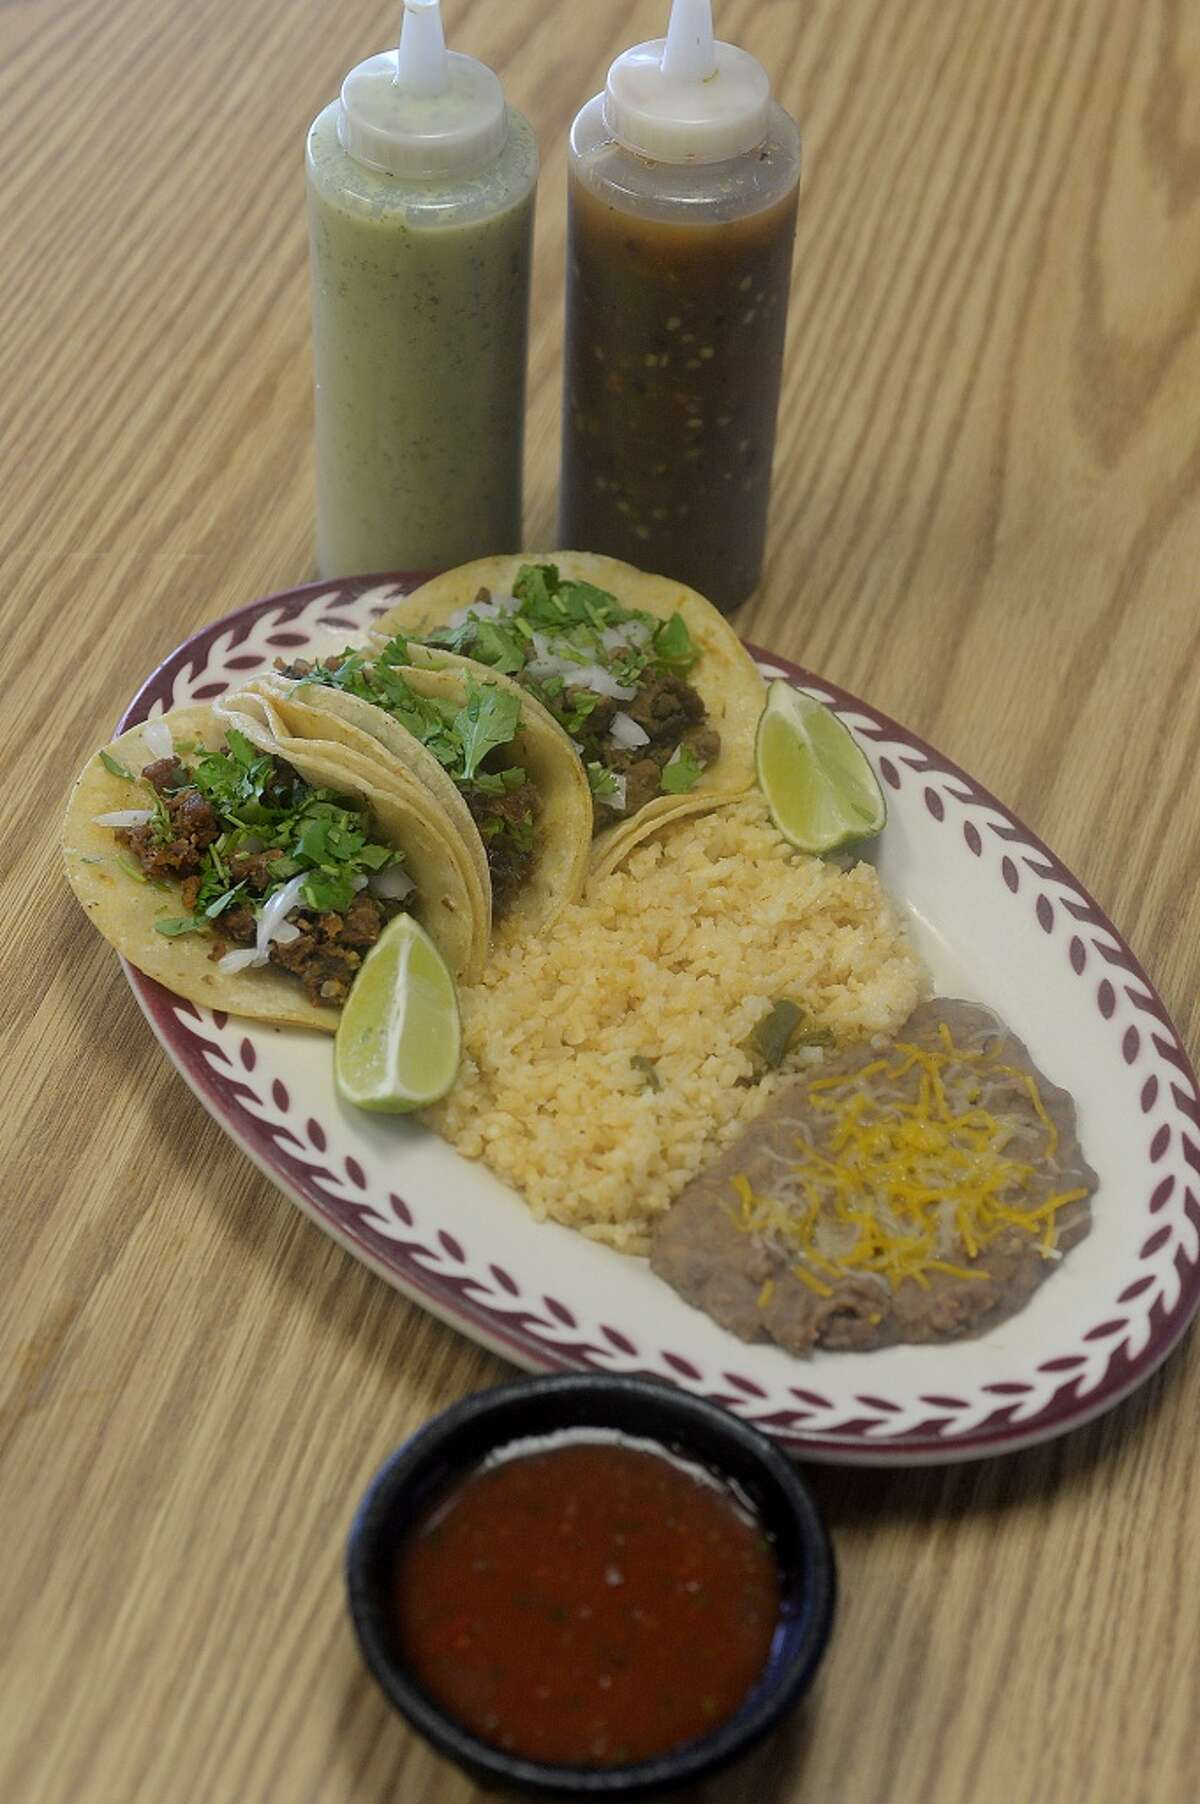 TITO'S TACOS, 2949 College Street, Beaumont Recent Review: